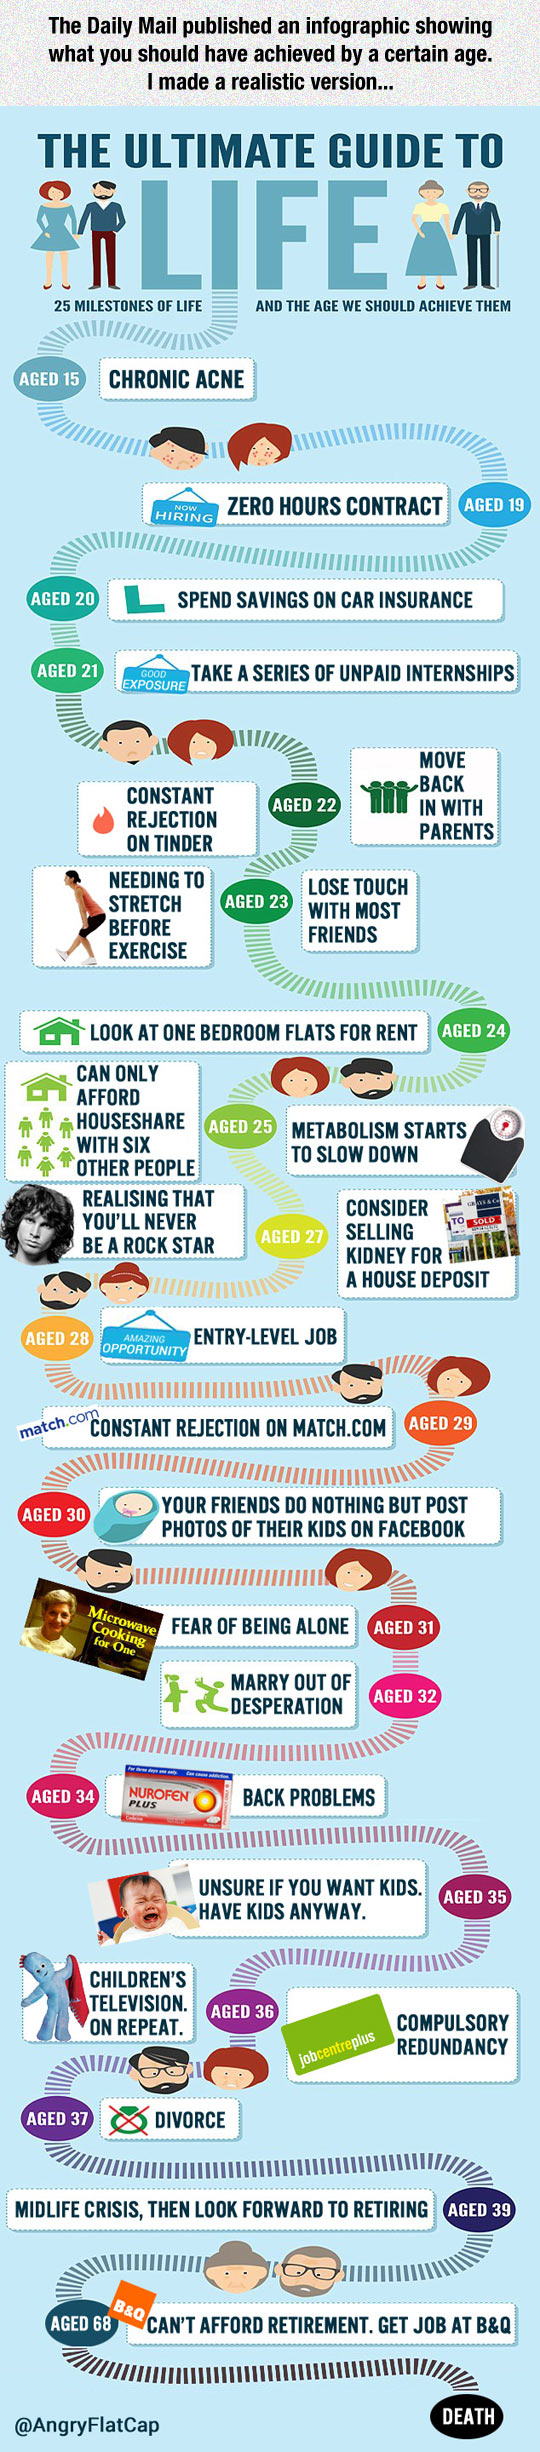 funny-infographic-life-goals-age